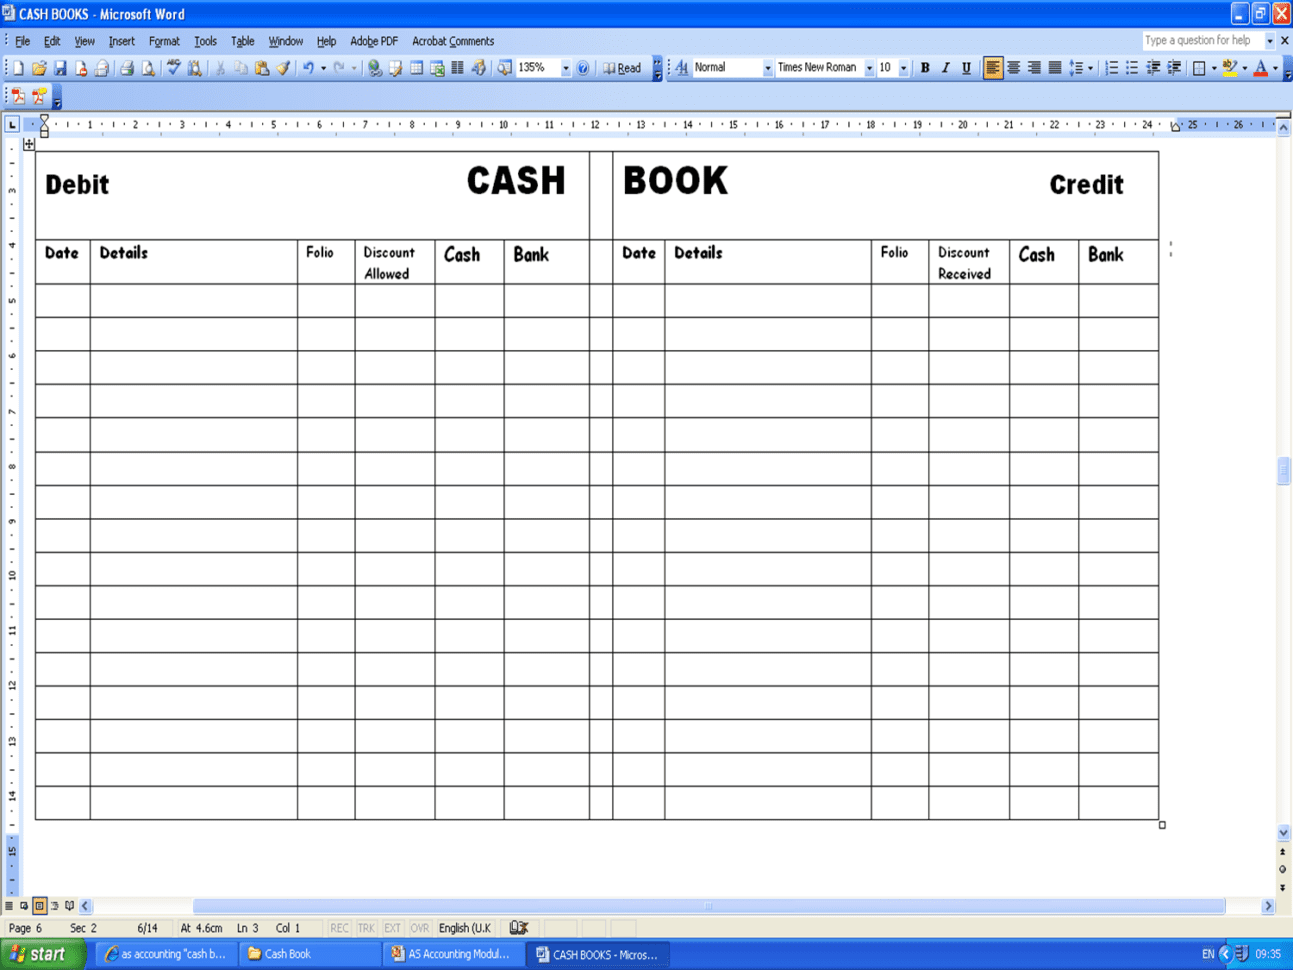 Accounting Journal Template Excel Microsoft Excel Accounting Templates Download Business Spreadsheet Of Expenses And Income Free Printable 6 Column Sheets Accounting Spreadsheets Free Free Excel Accounting Templates Download Small Business Bookkeeping Template  How To Keep Accounts In Excel Accounting Spreadsheet Template Spreadsheet Templates for Busines